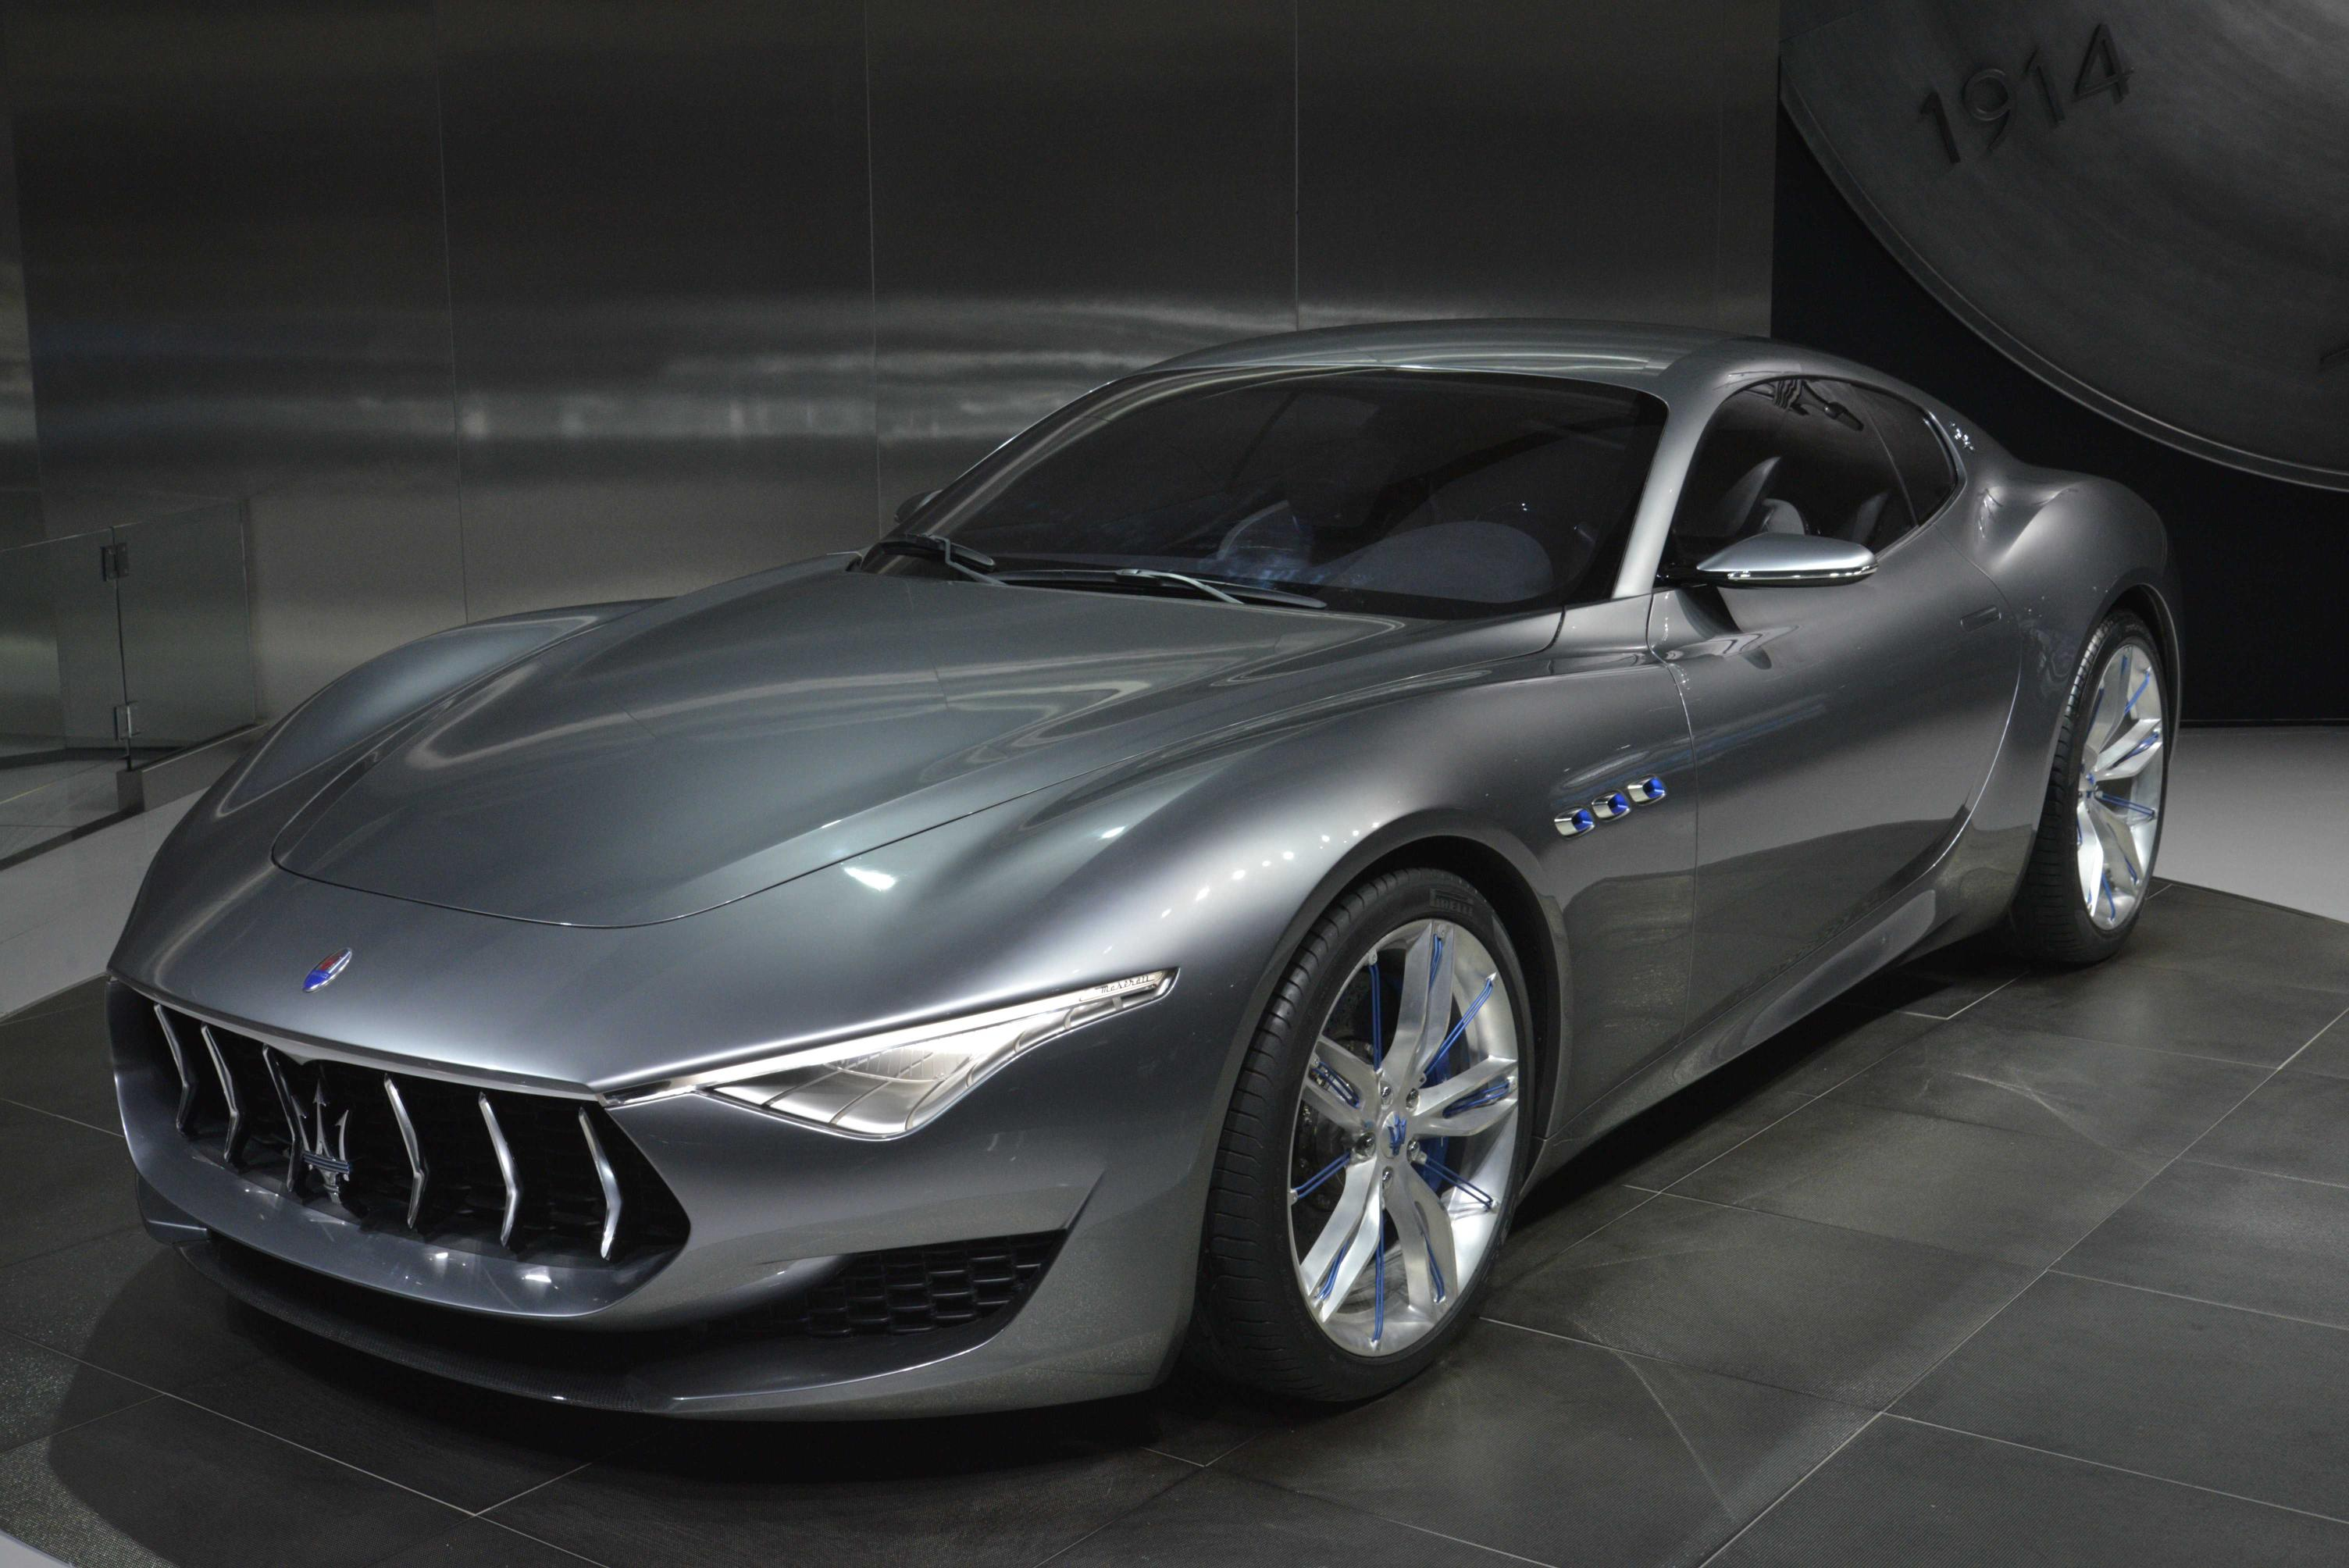 maserati shows alfieri concept in detroit announces 2014 sales record live photos autoevolution. Black Bedroom Furniture Sets. Home Design Ideas